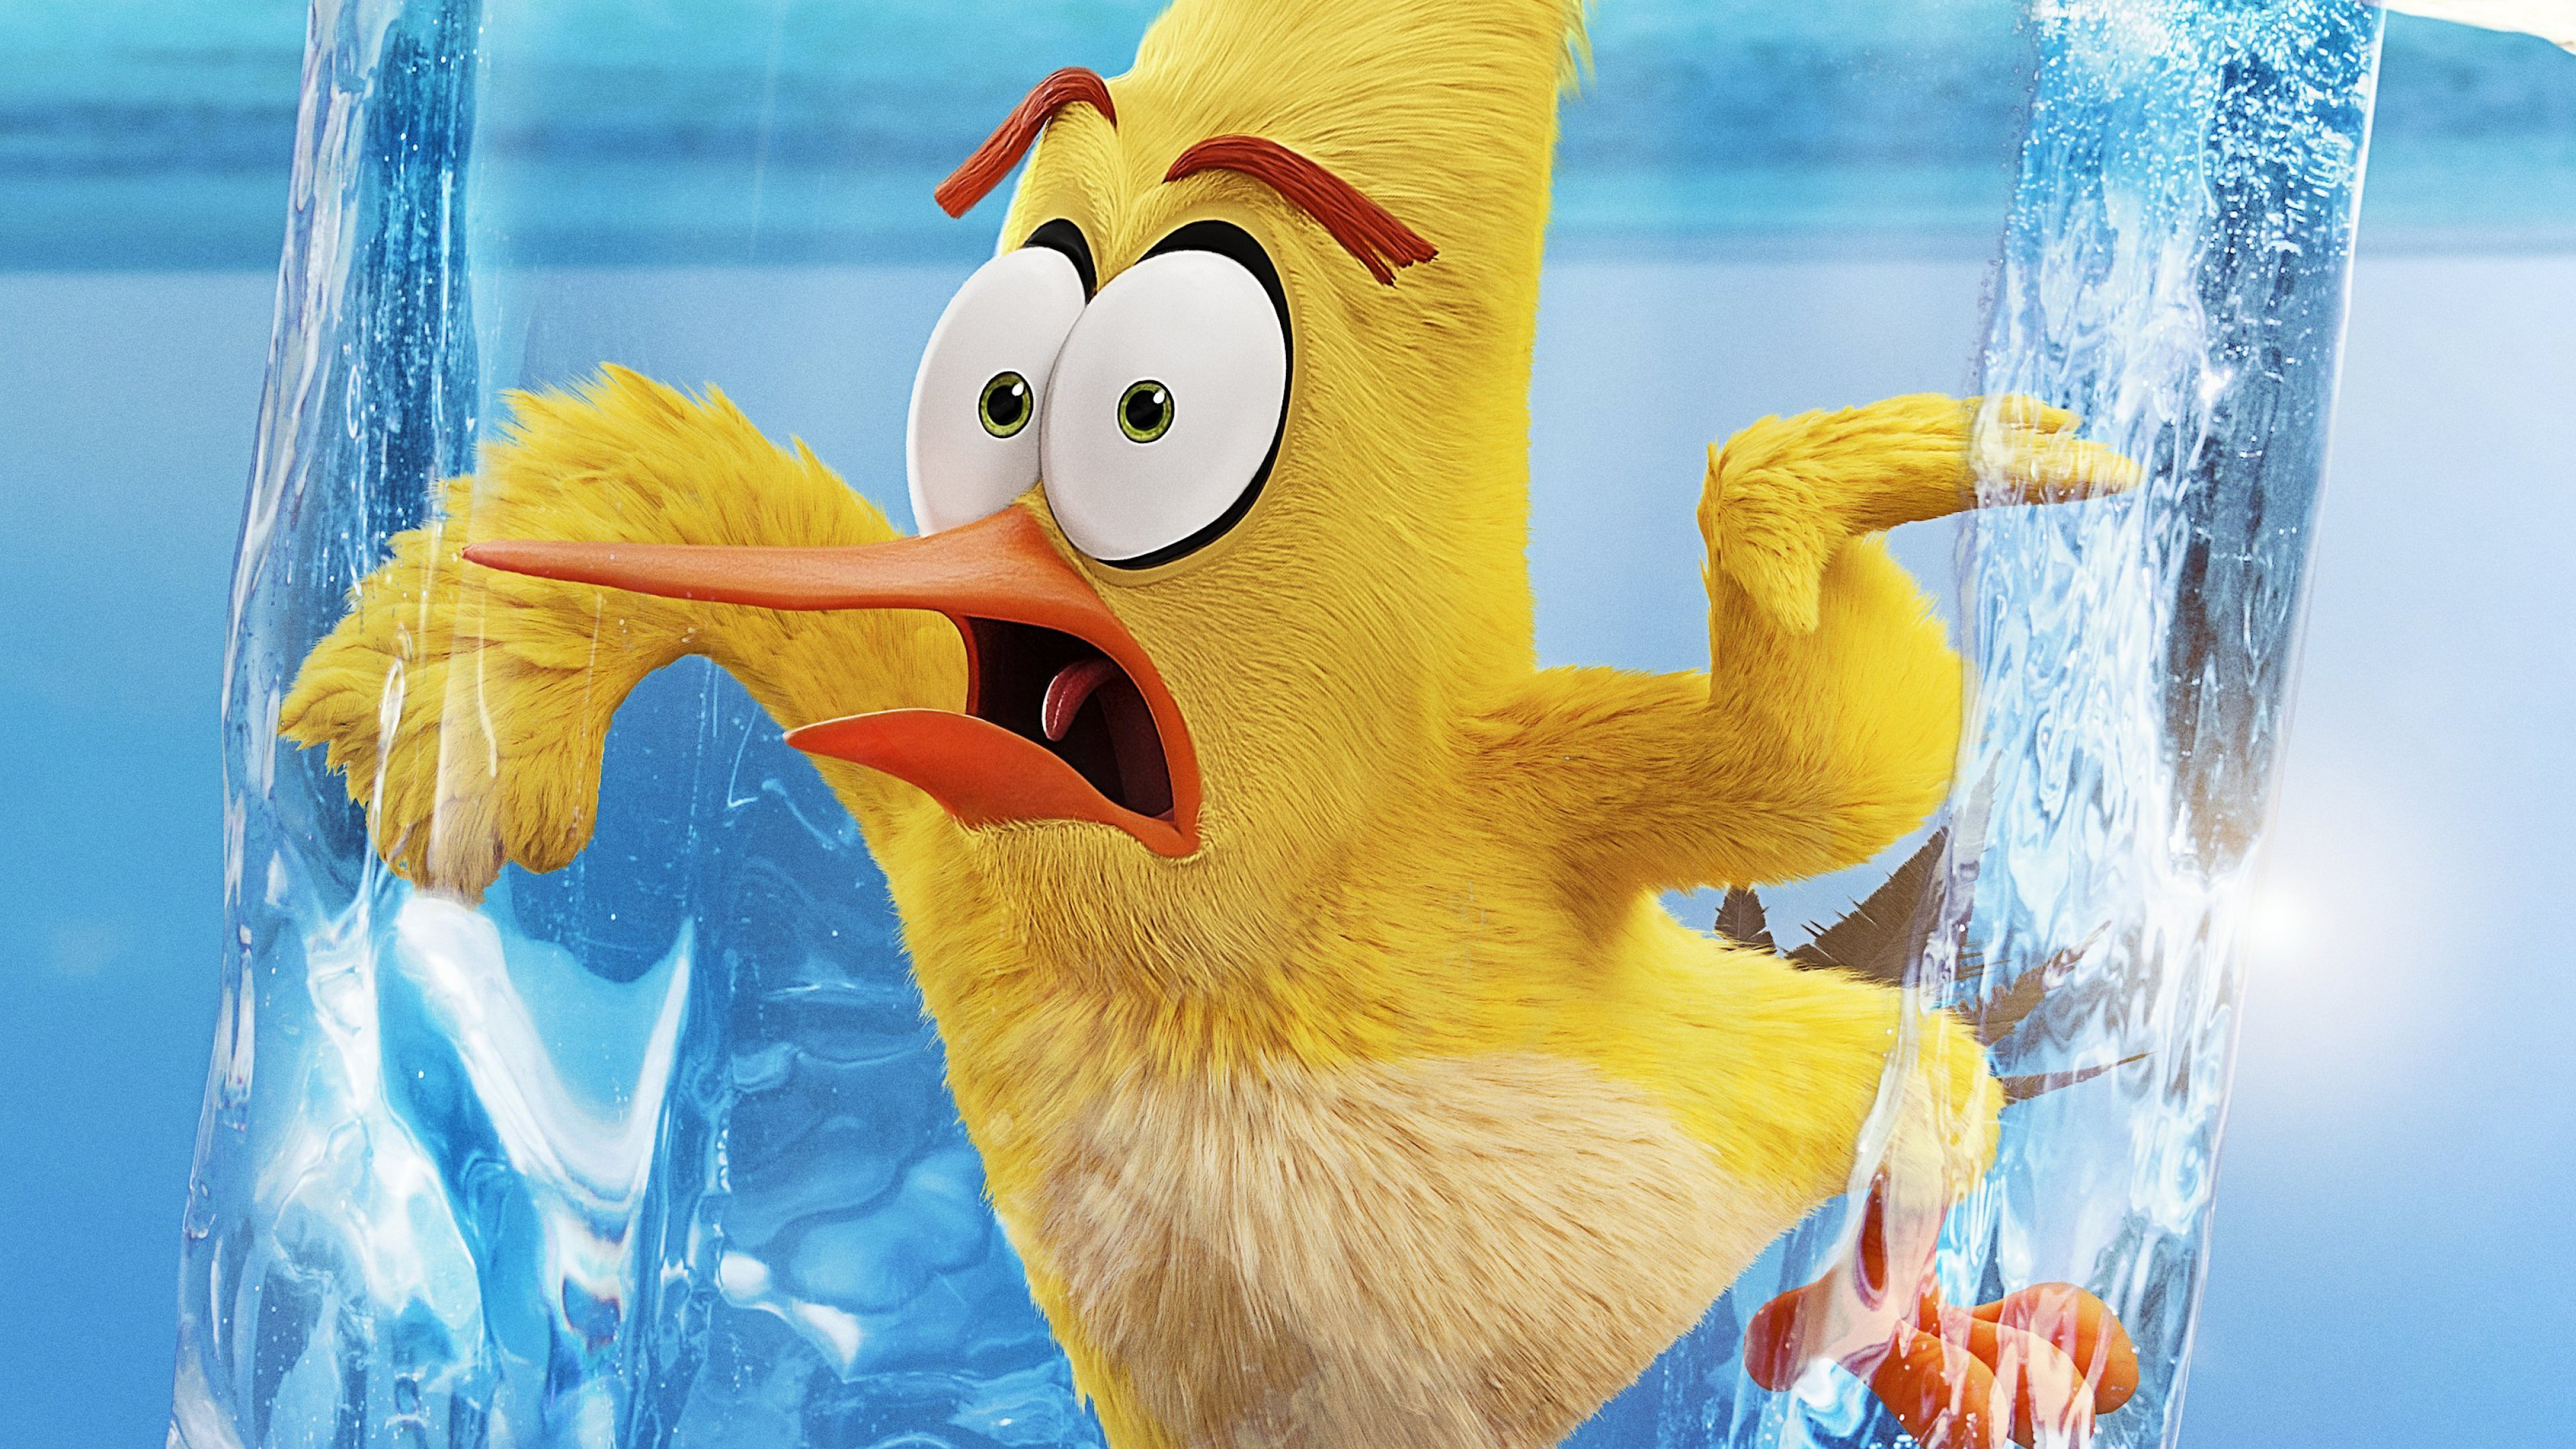 Wallpaper The Angry Birds Movie - Angry Birds The Movie 2 , HD Wallpaper & Backgrounds